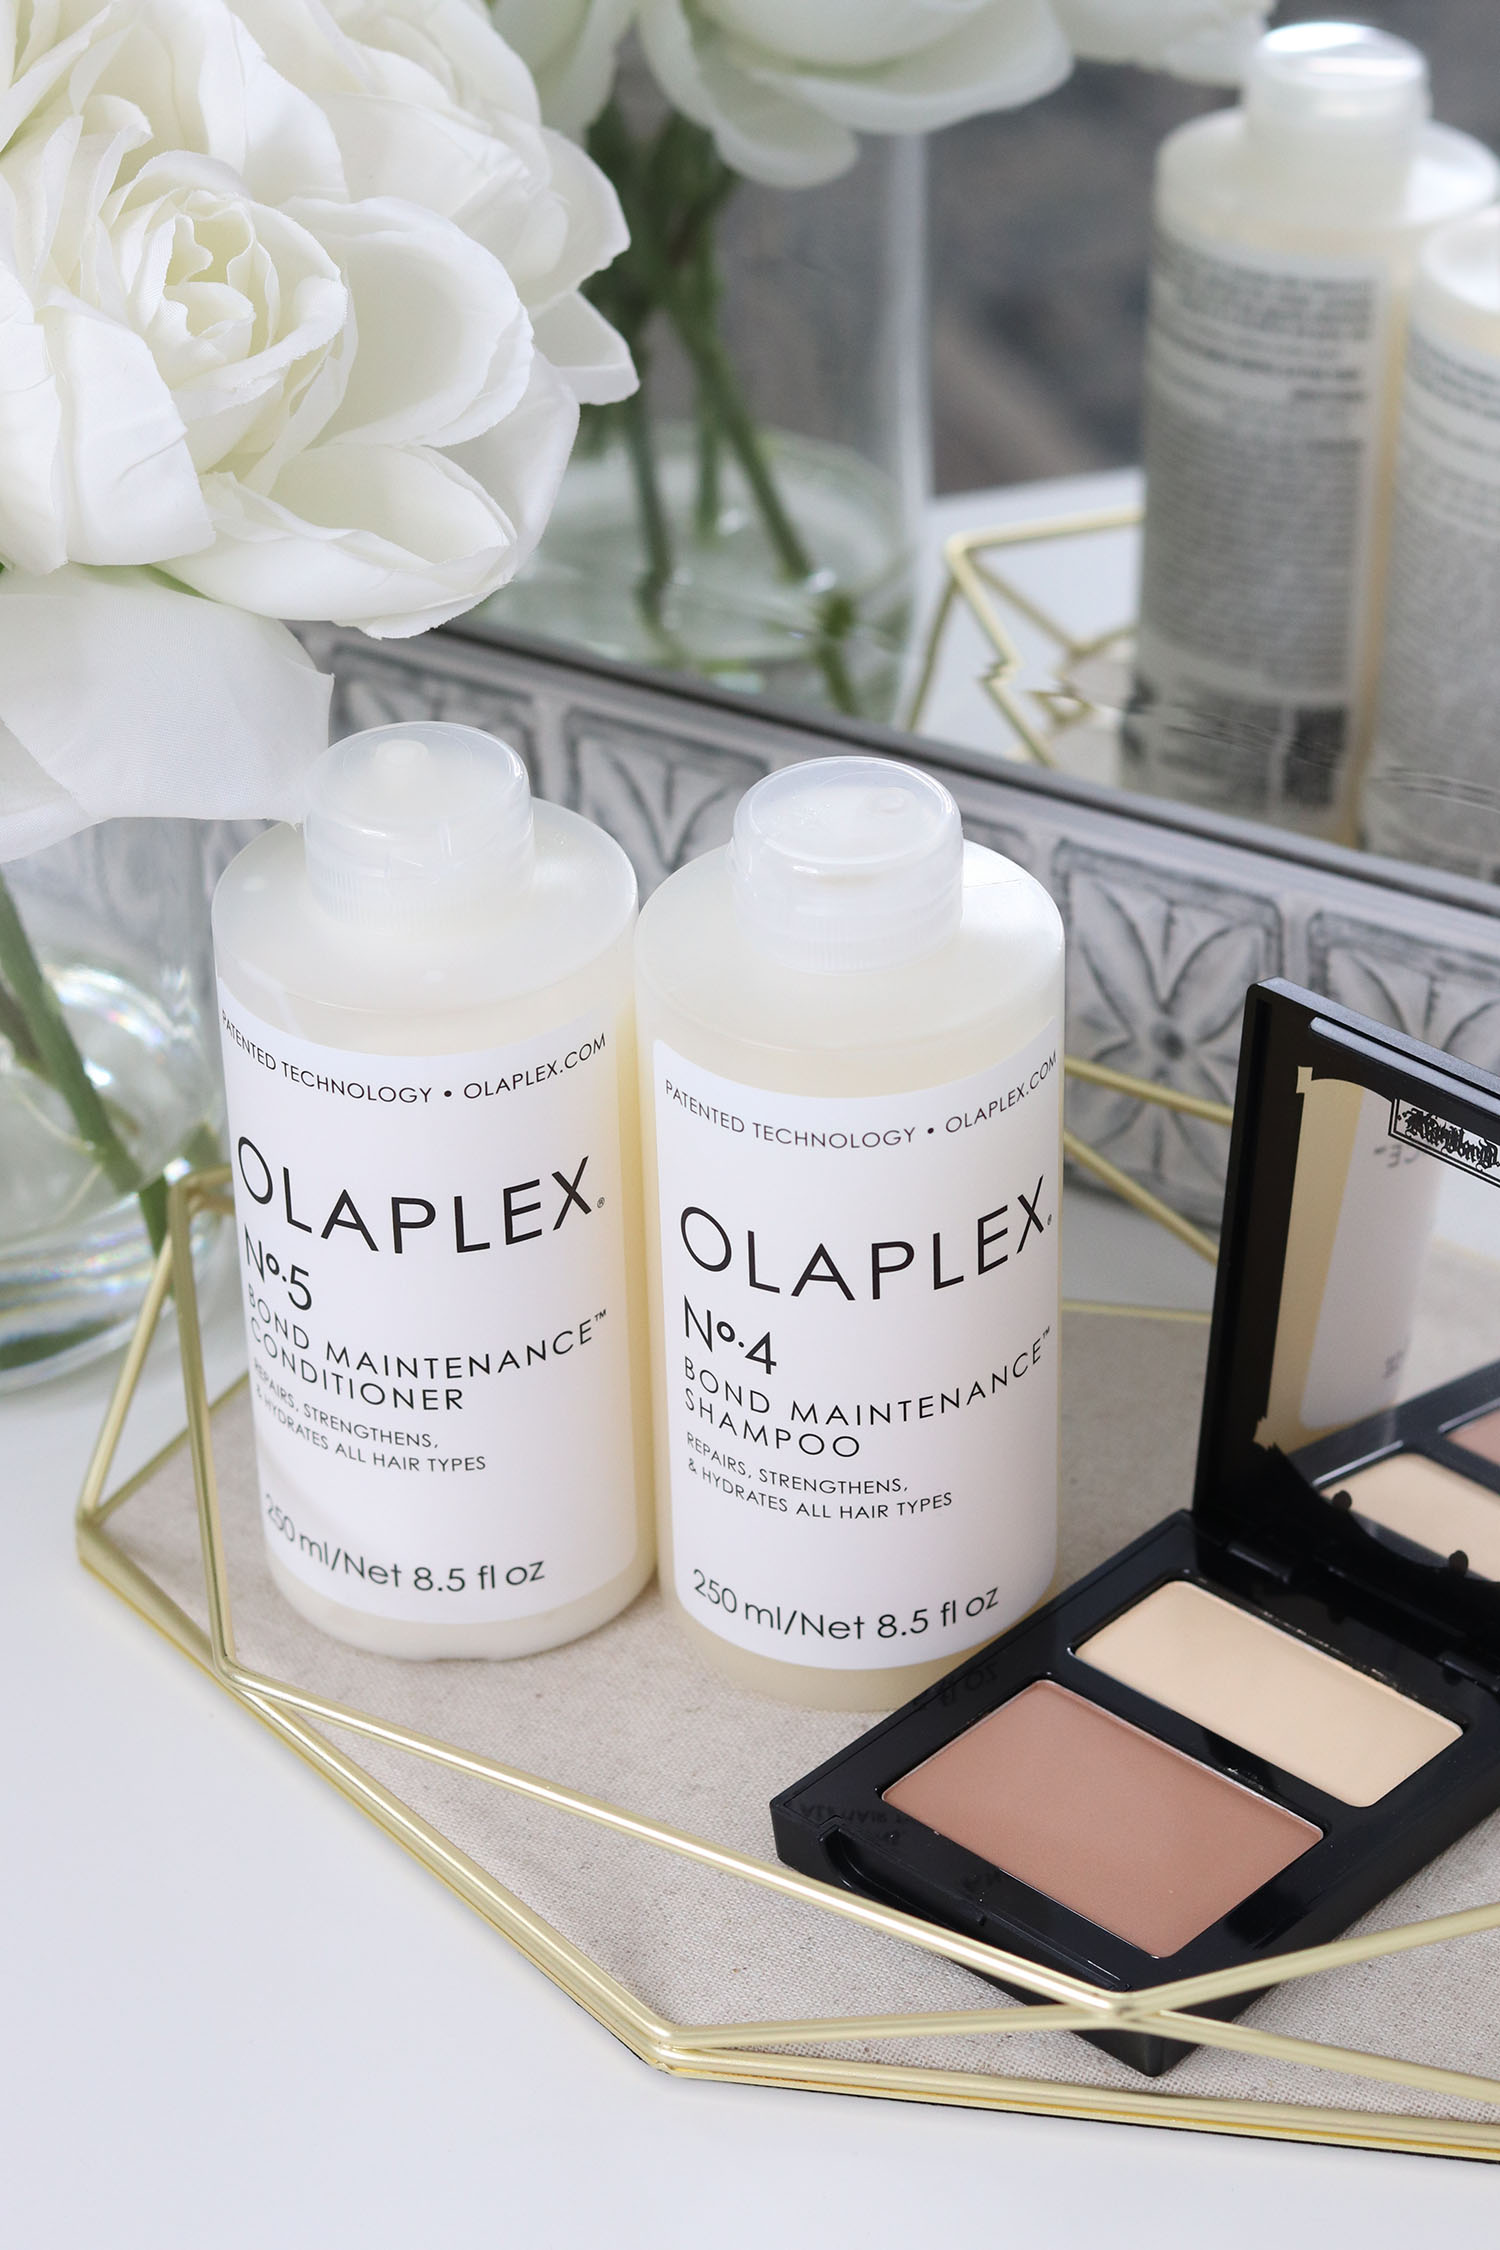 Clean High Performing Shampoo and Conditioner Clean at Sephora, Olaplex No 4 Shampoo and Olaplex No 5 Conditioner, KVD Beauty Mini Shade Light Contour Palette | Spring Beauty Haul